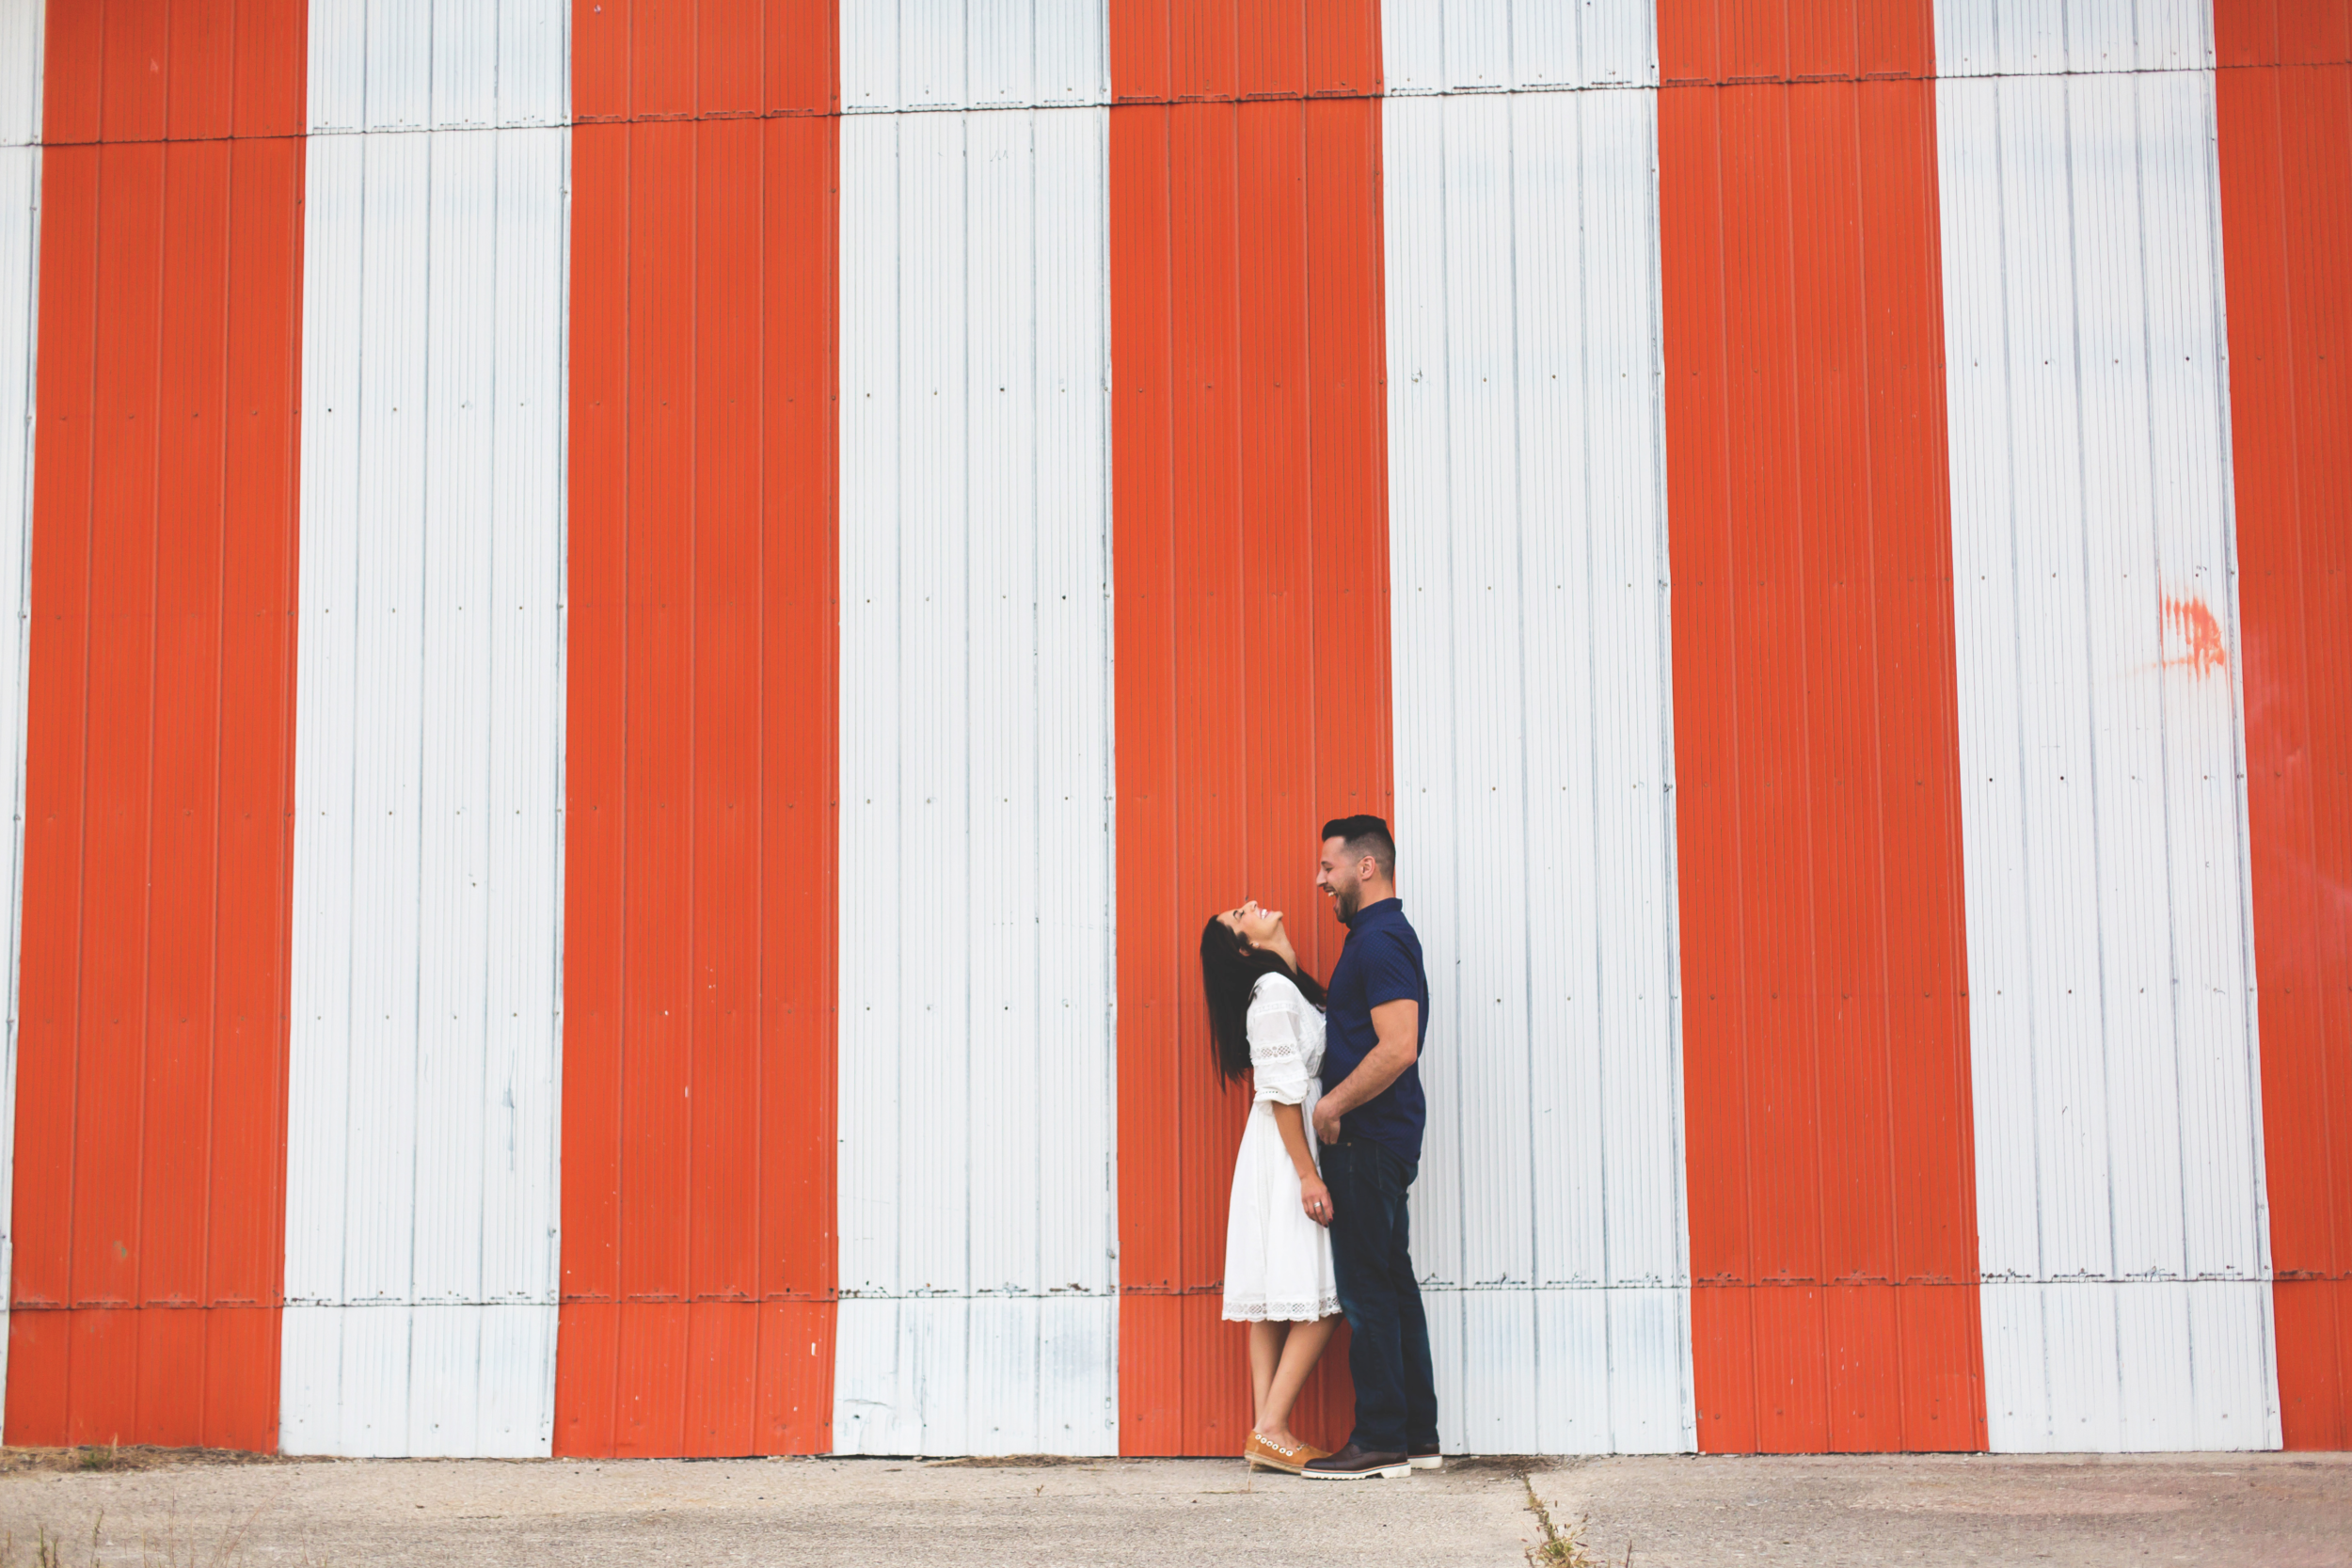 Engagement-Session-Hamilton-Burlington-Oakville-Toronto-Niagara-Wedding-Photographer-Engaged-Photography-Brantford-Airport-HamOnt-Engaged-Moments-by-Lauren-Photo-Image-16.png